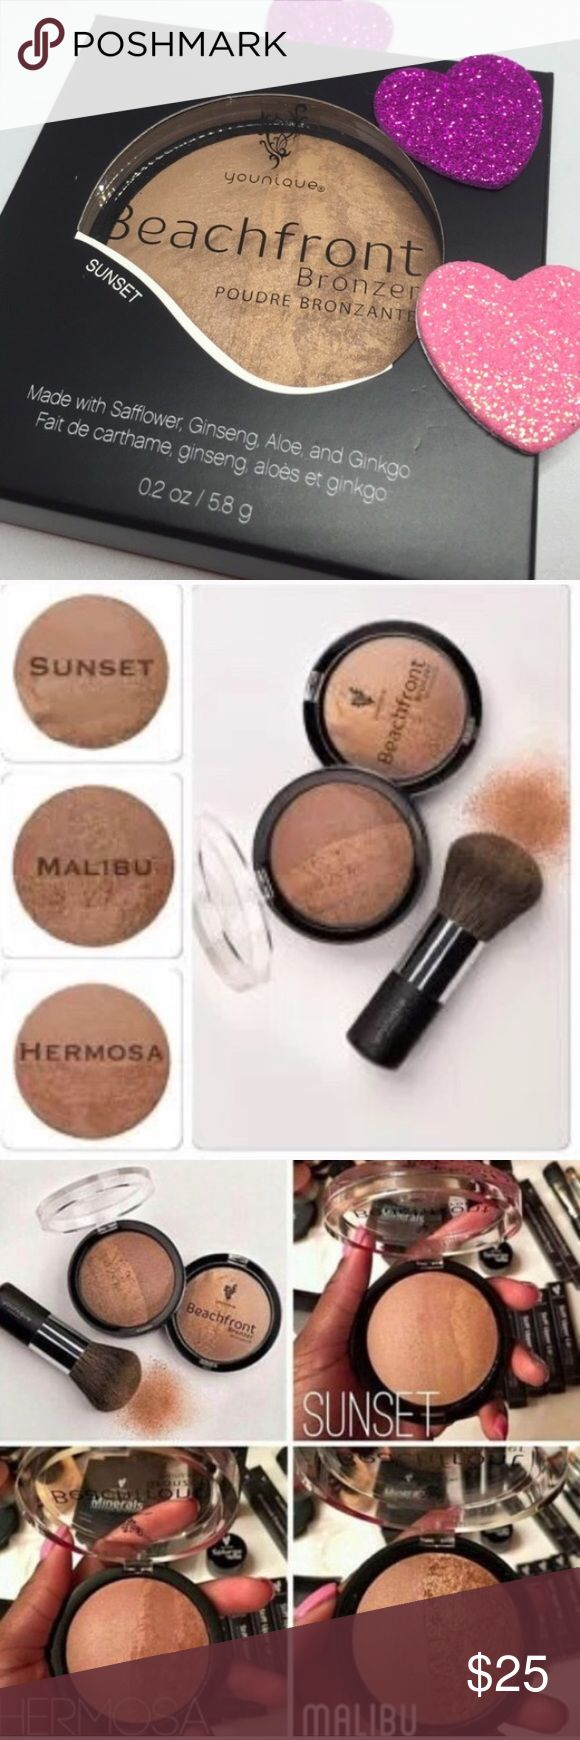 Younique Bronzer in SUNSET NEW SEALED YOUNIQUE💋 Younique Bronzer for that natural Sunkist look in mineral makeup Color is SUNSET.  Brand-new sealed get it now! Younique Makeup Bronzer